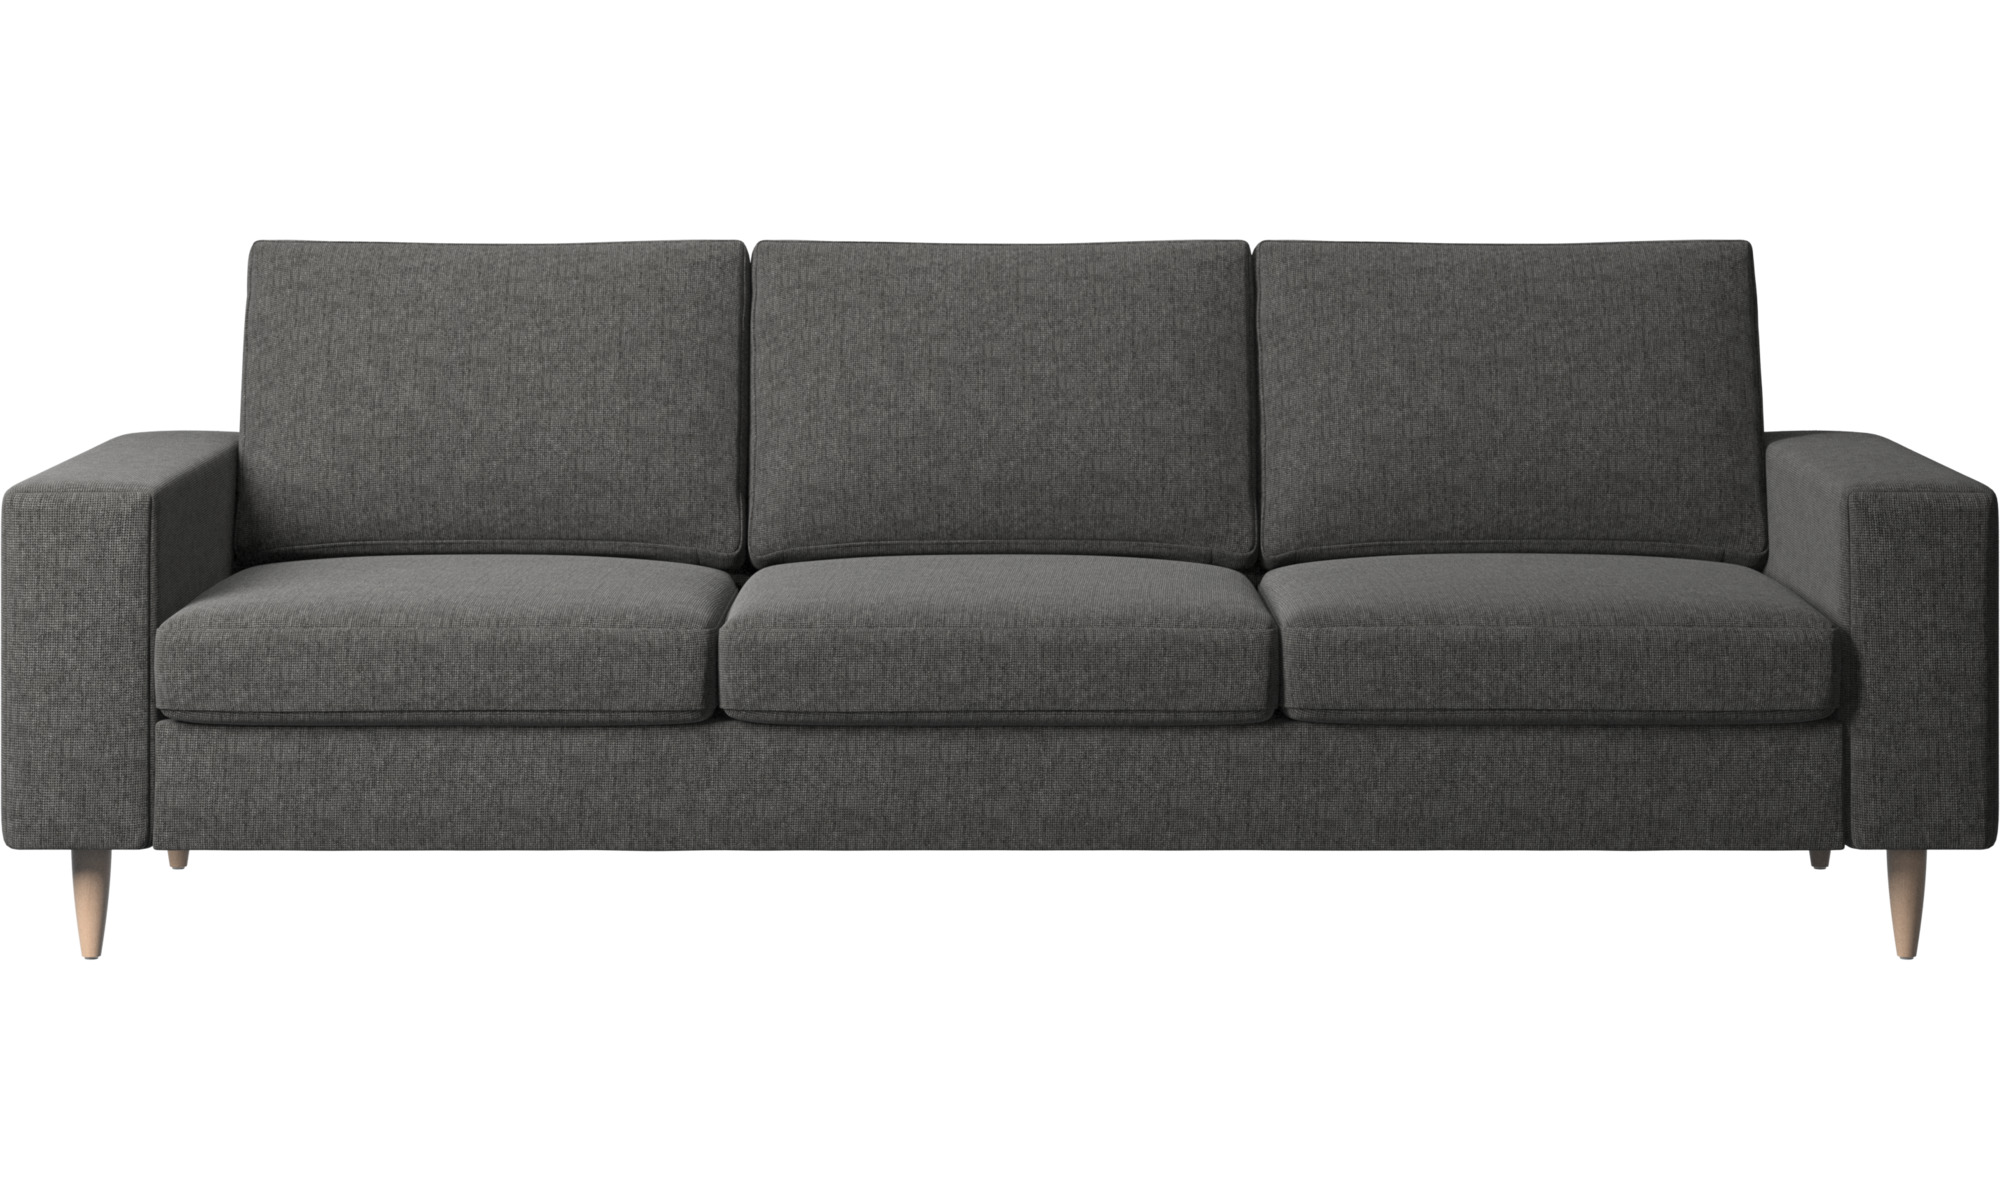 3 seater sofas indivi 2 sofa boconcept for Sofa 2 sitzer